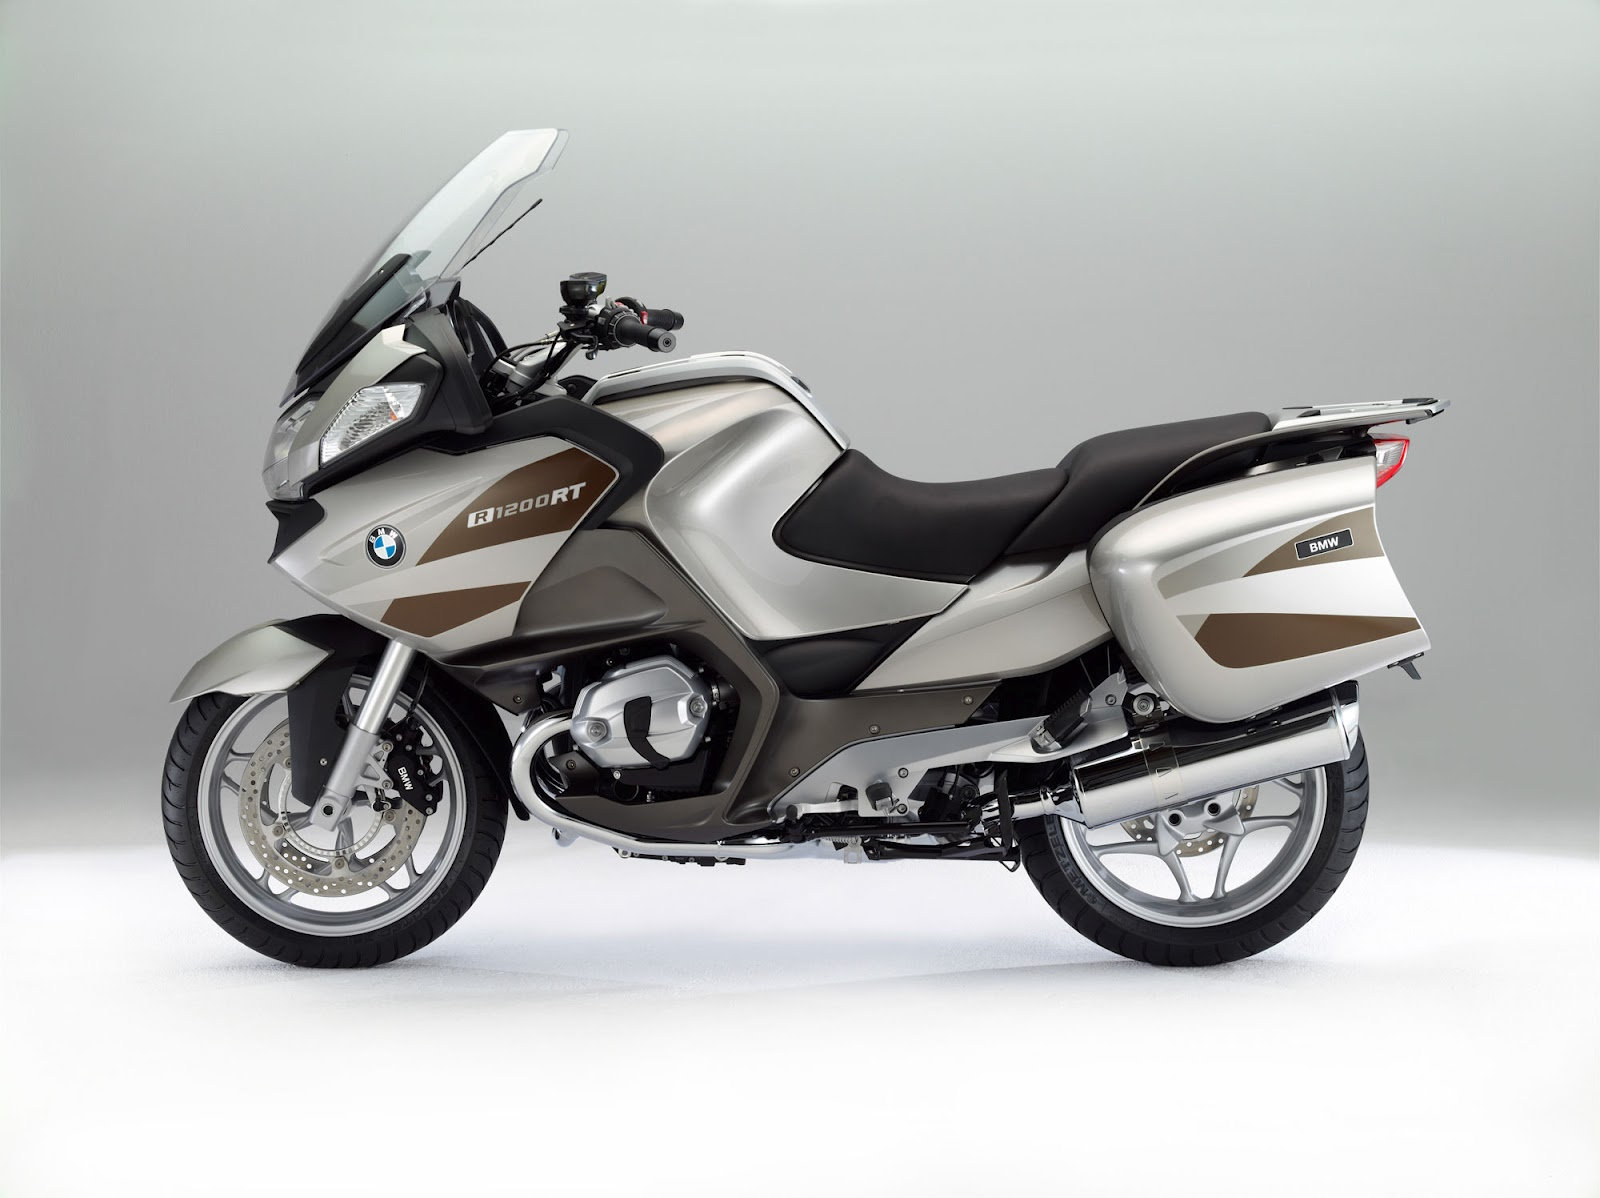 2012 bmw r1200rt review motorcycles specification. Black Bedroom Furniture Sets. Home Design Ideas